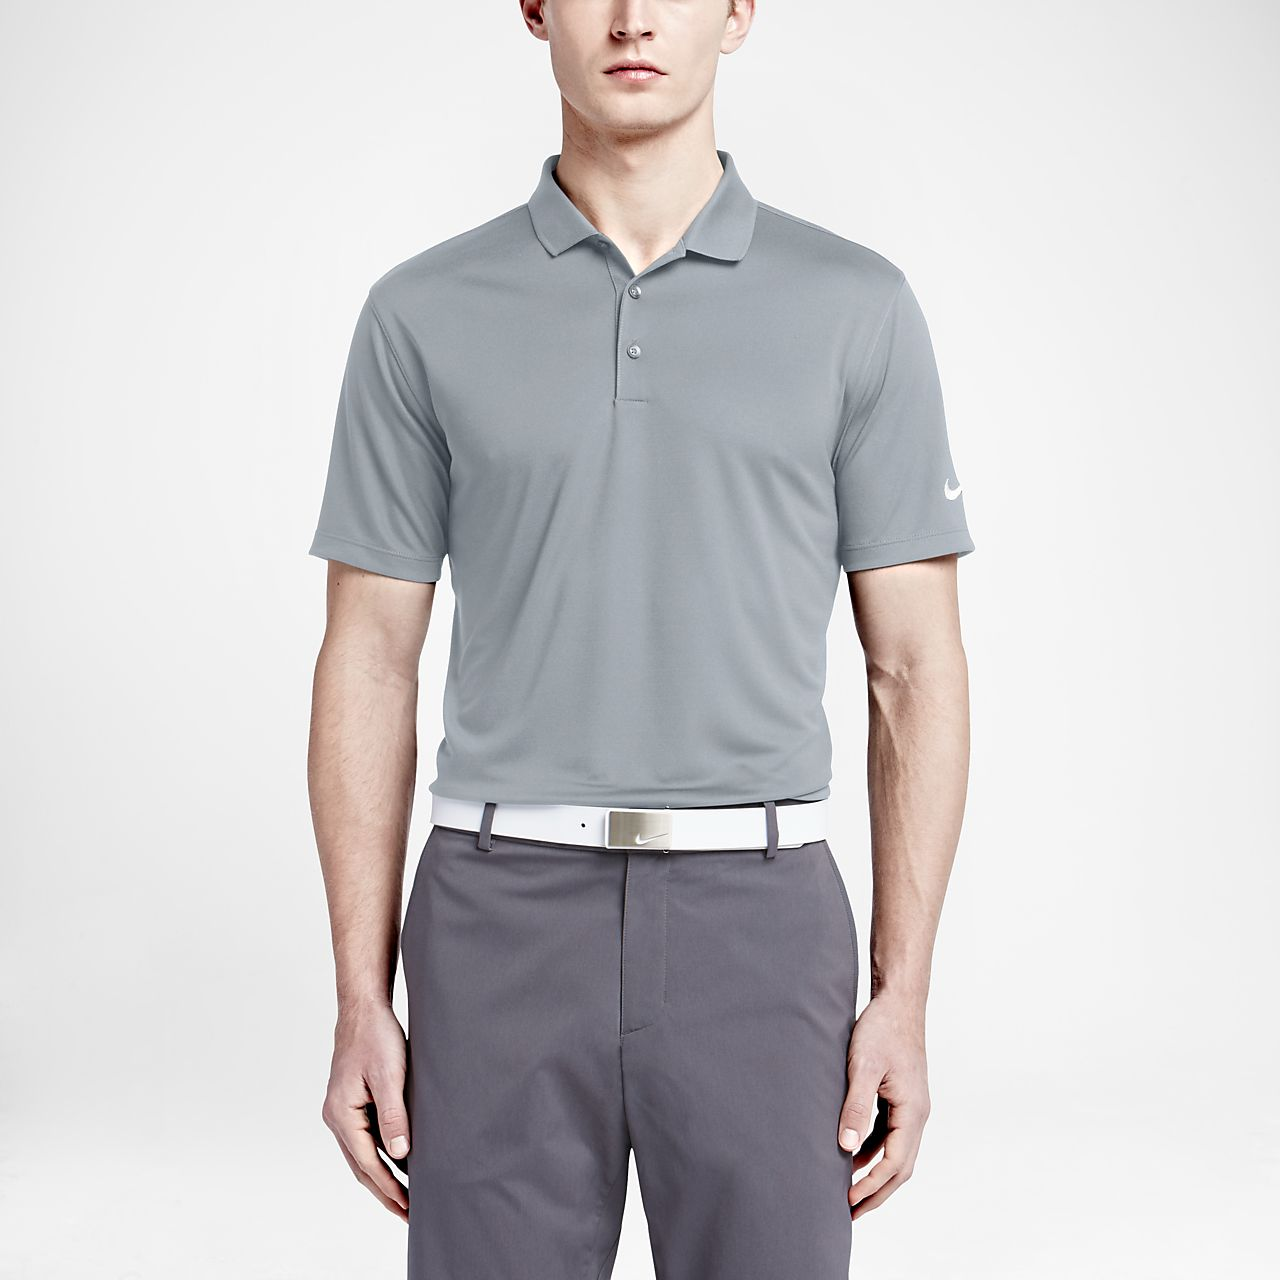 ... Nike Victory Solid Men's Standard Fit Golf Polo